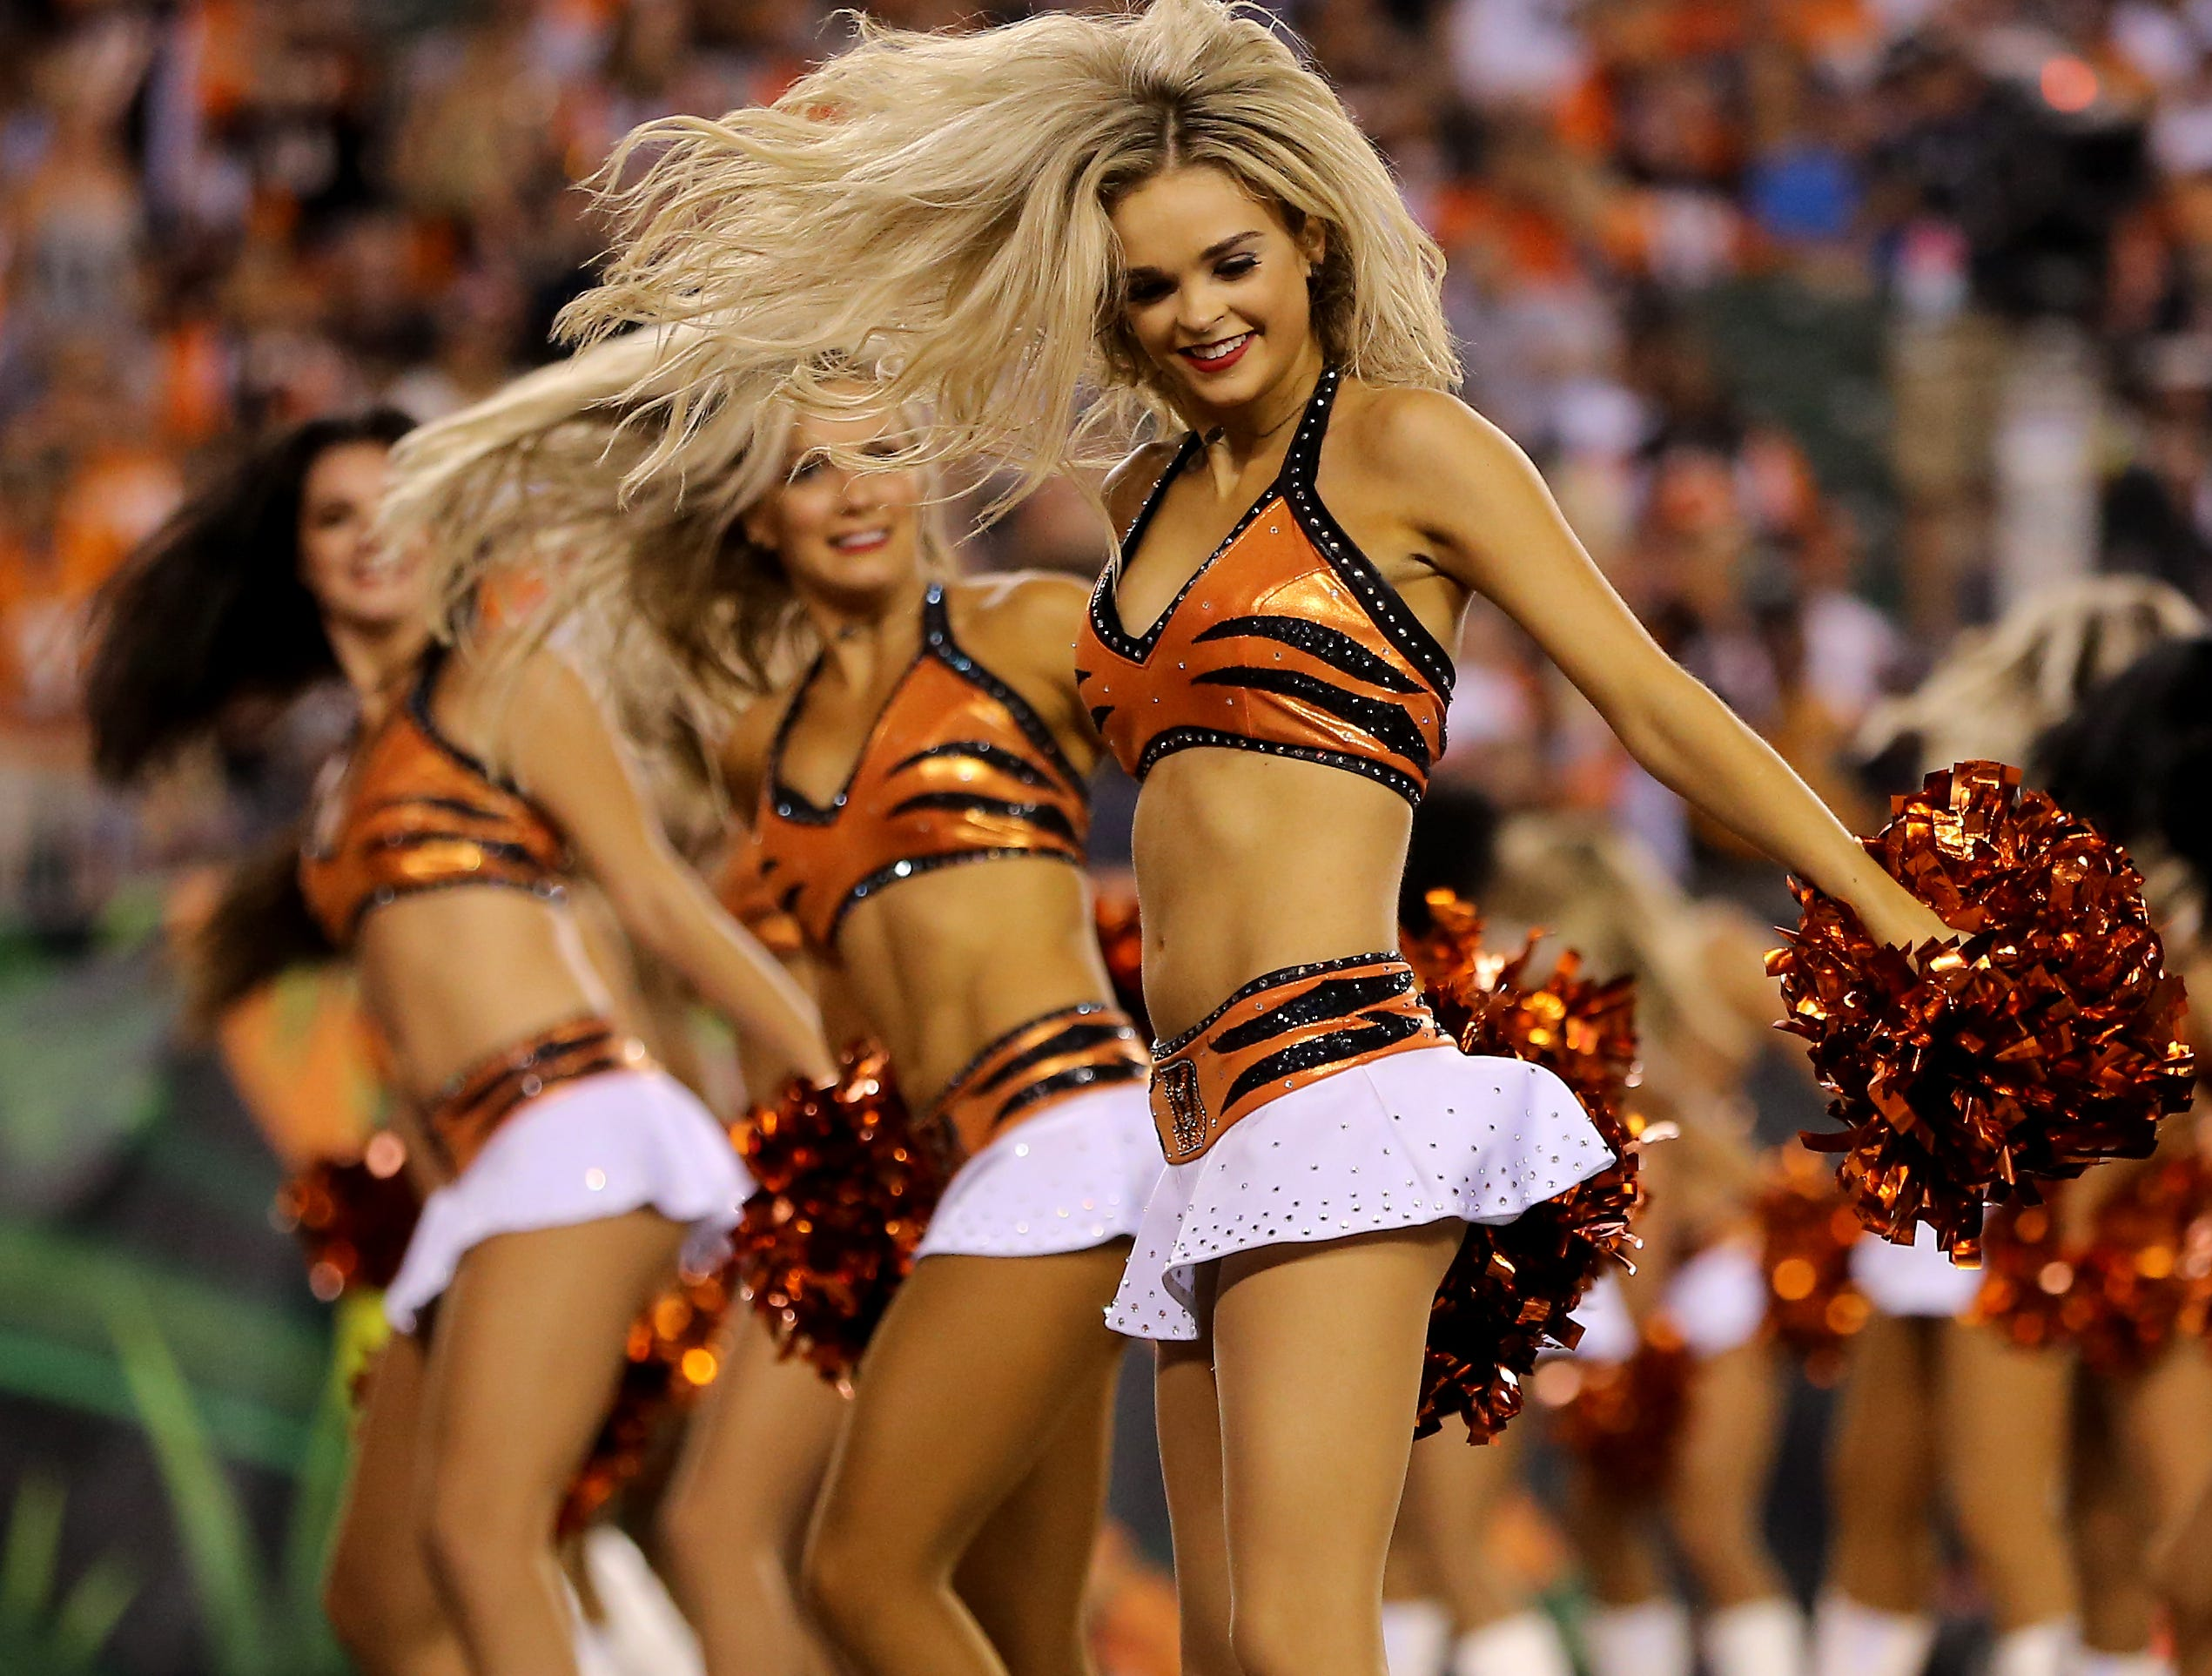 The Cincinnati Ben-Gals perform between the first and second quarters during the Week 2 NFL football game between the Baltimore Ravens and the Cincinnati Bengals, Thursday, Sept. 13, 2018, Paul Brown Stadium in Cincinnati.